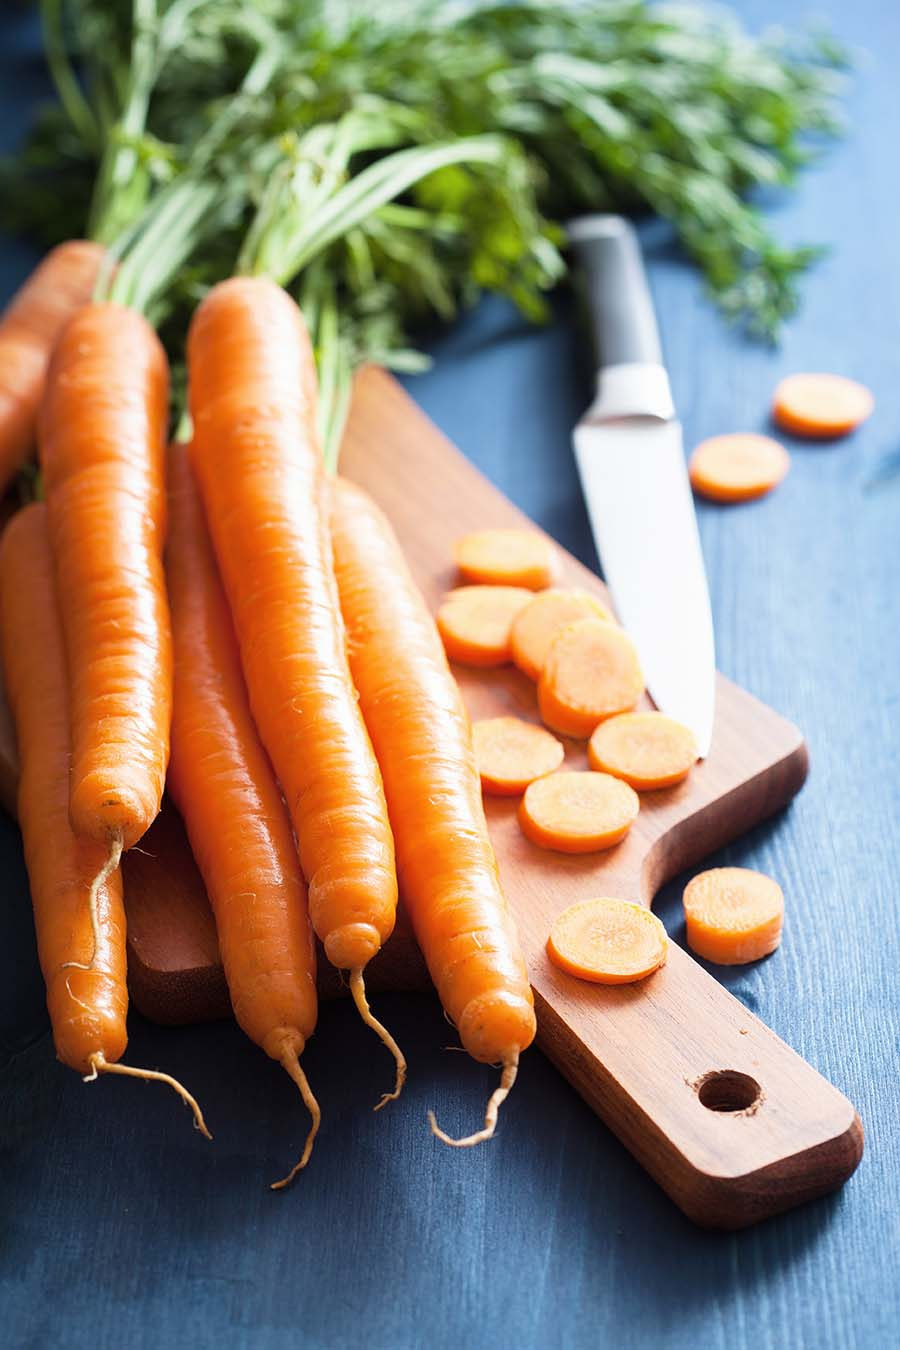 fresh carrot on cutting board with a knife.